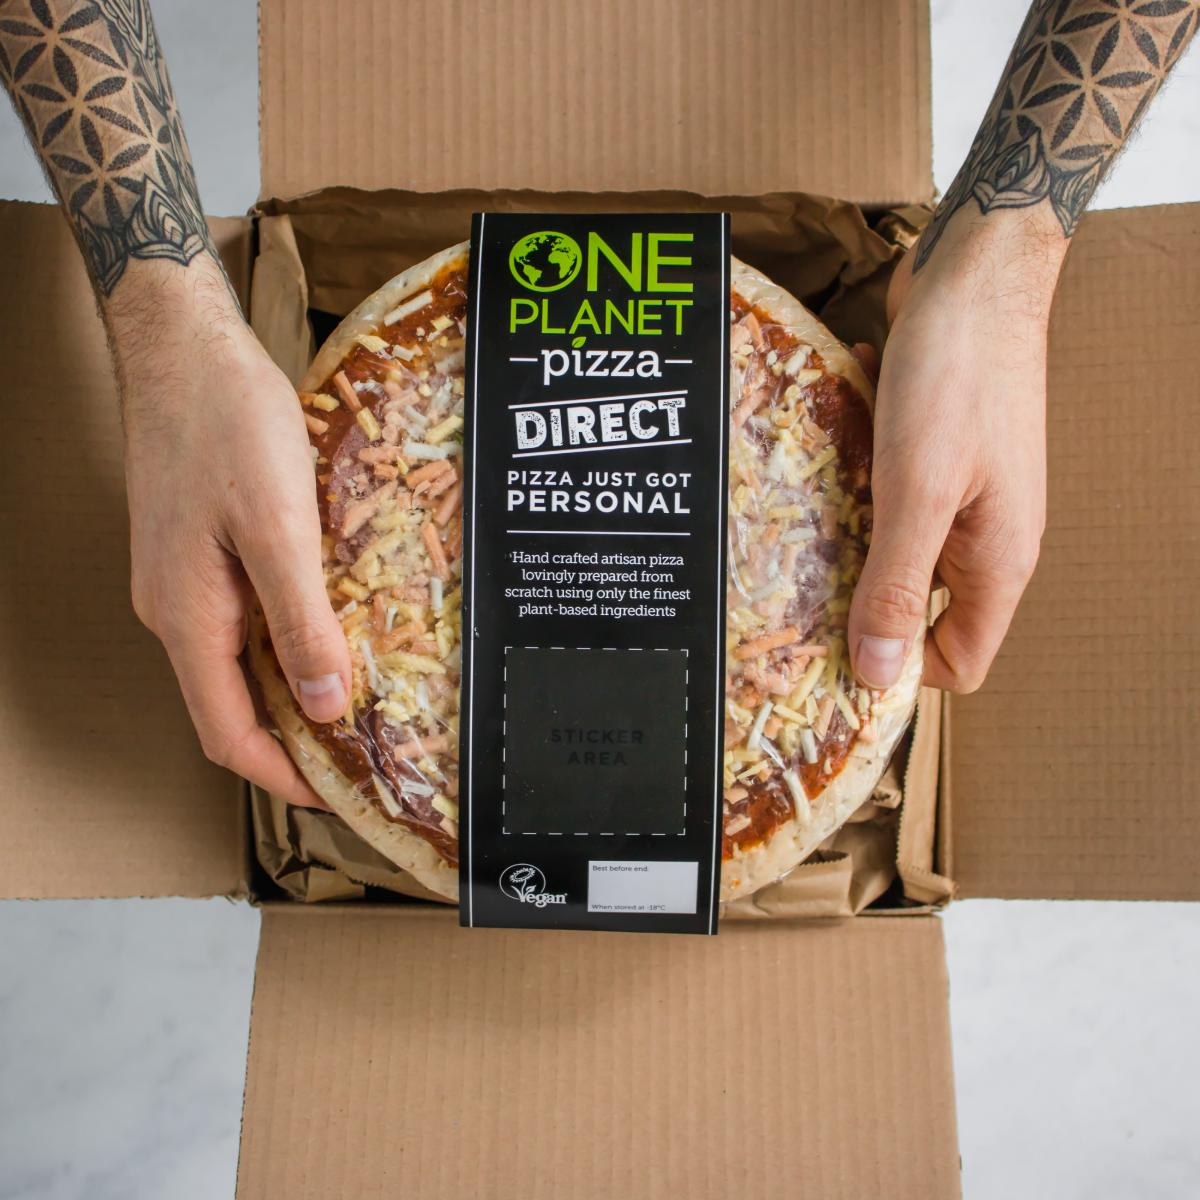 Tattoo'd persons hands holding a pizza in a cardboard box